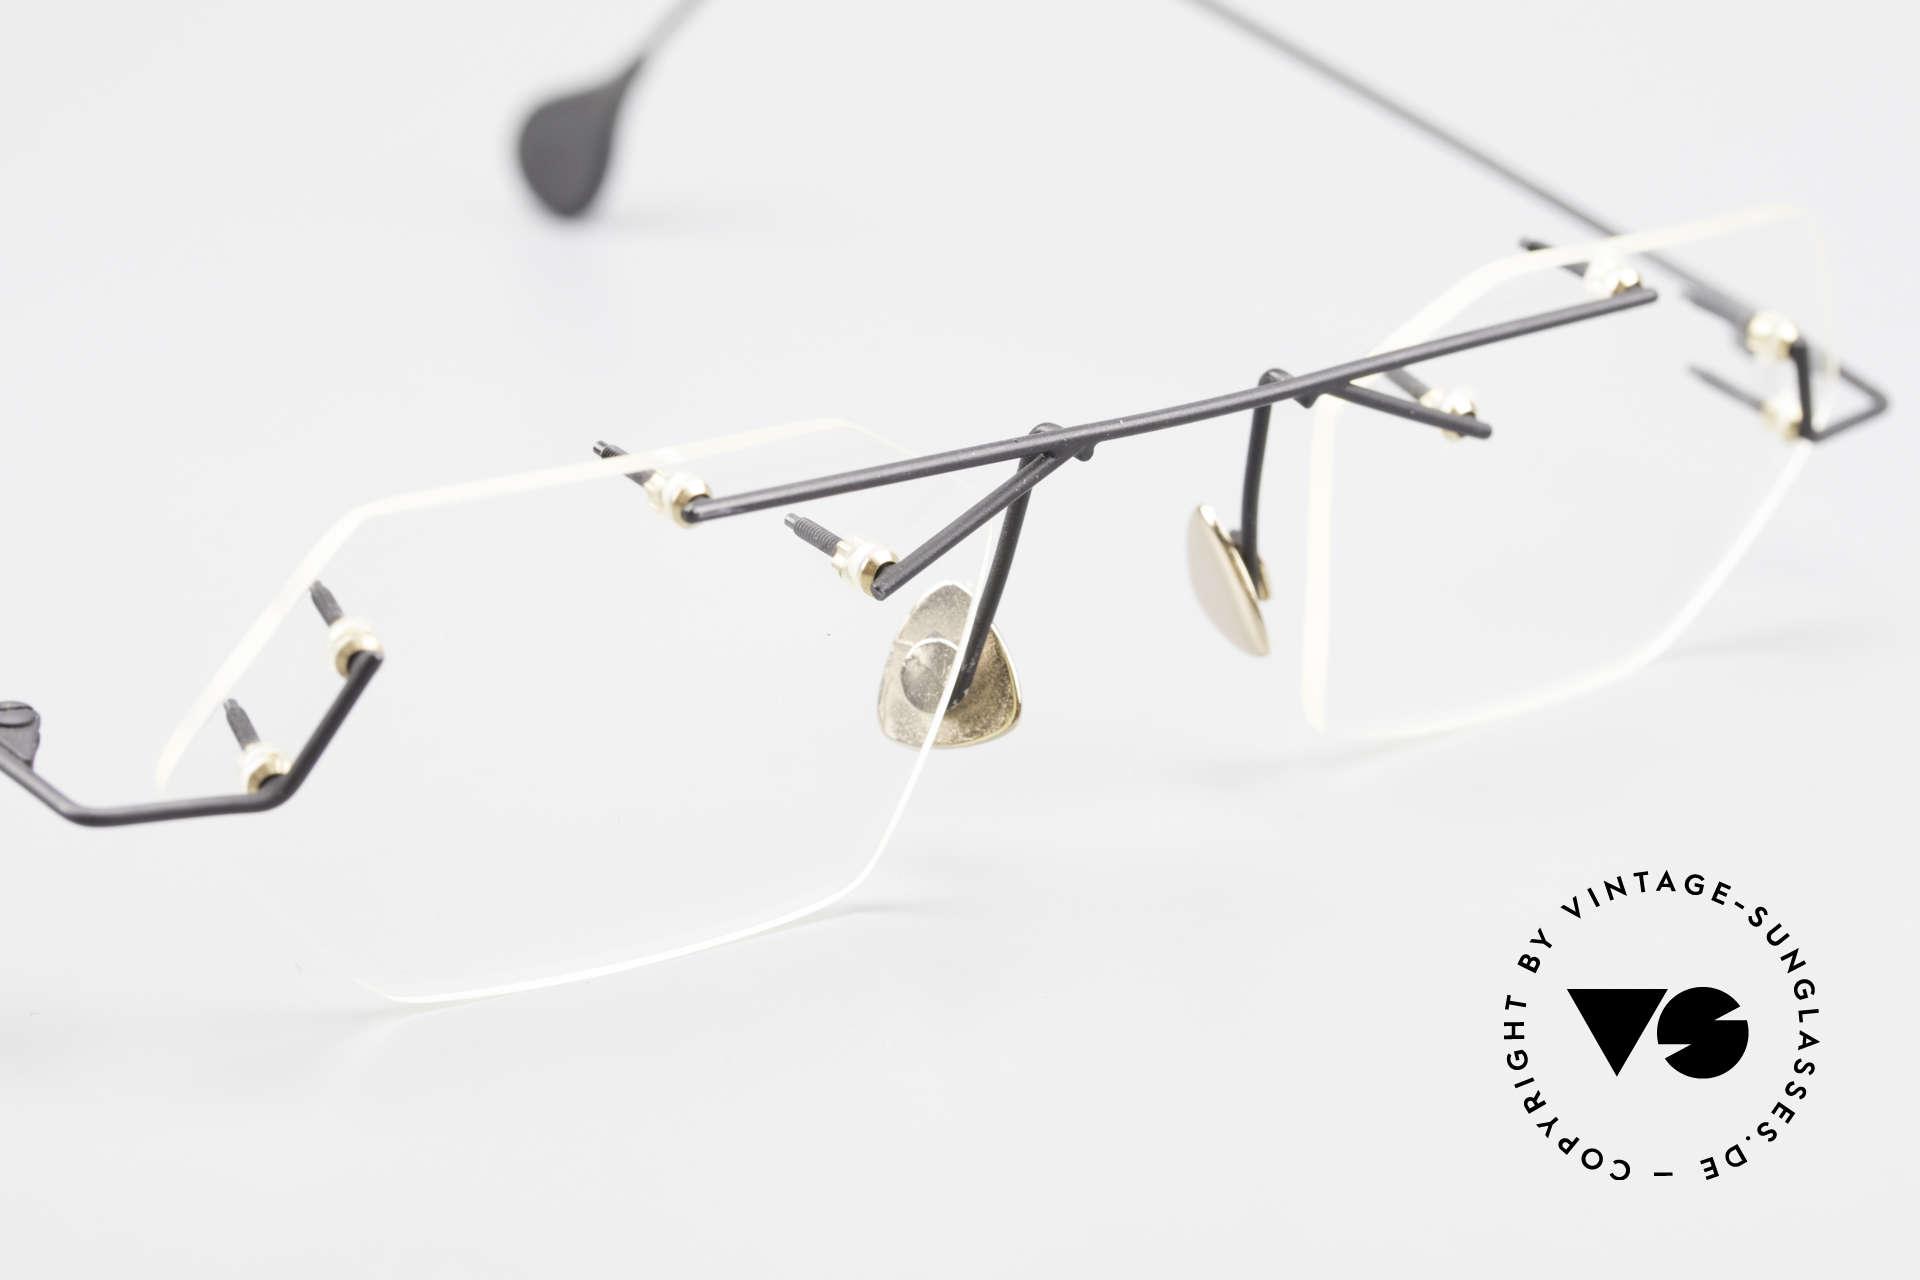 Paul Chiol 1998 Artful Rimless Eyeglasses 90's, demo lenses can be replaced with optical lenses, Made for Men and Women